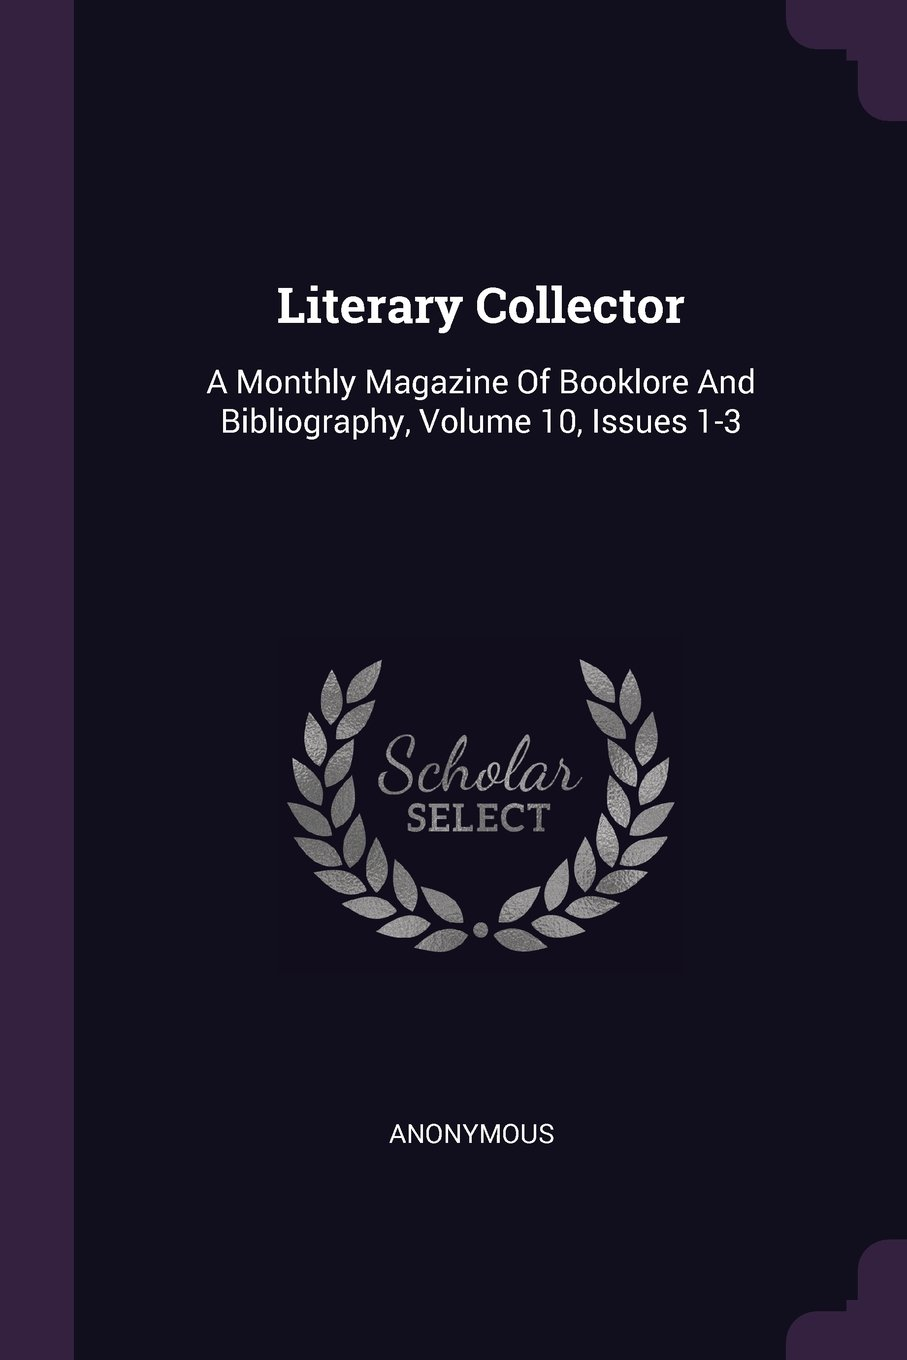 Literary Collector: A Monthly Magazine of Booklore and Bibliography, Volume 10, Issues 1-3 ebook